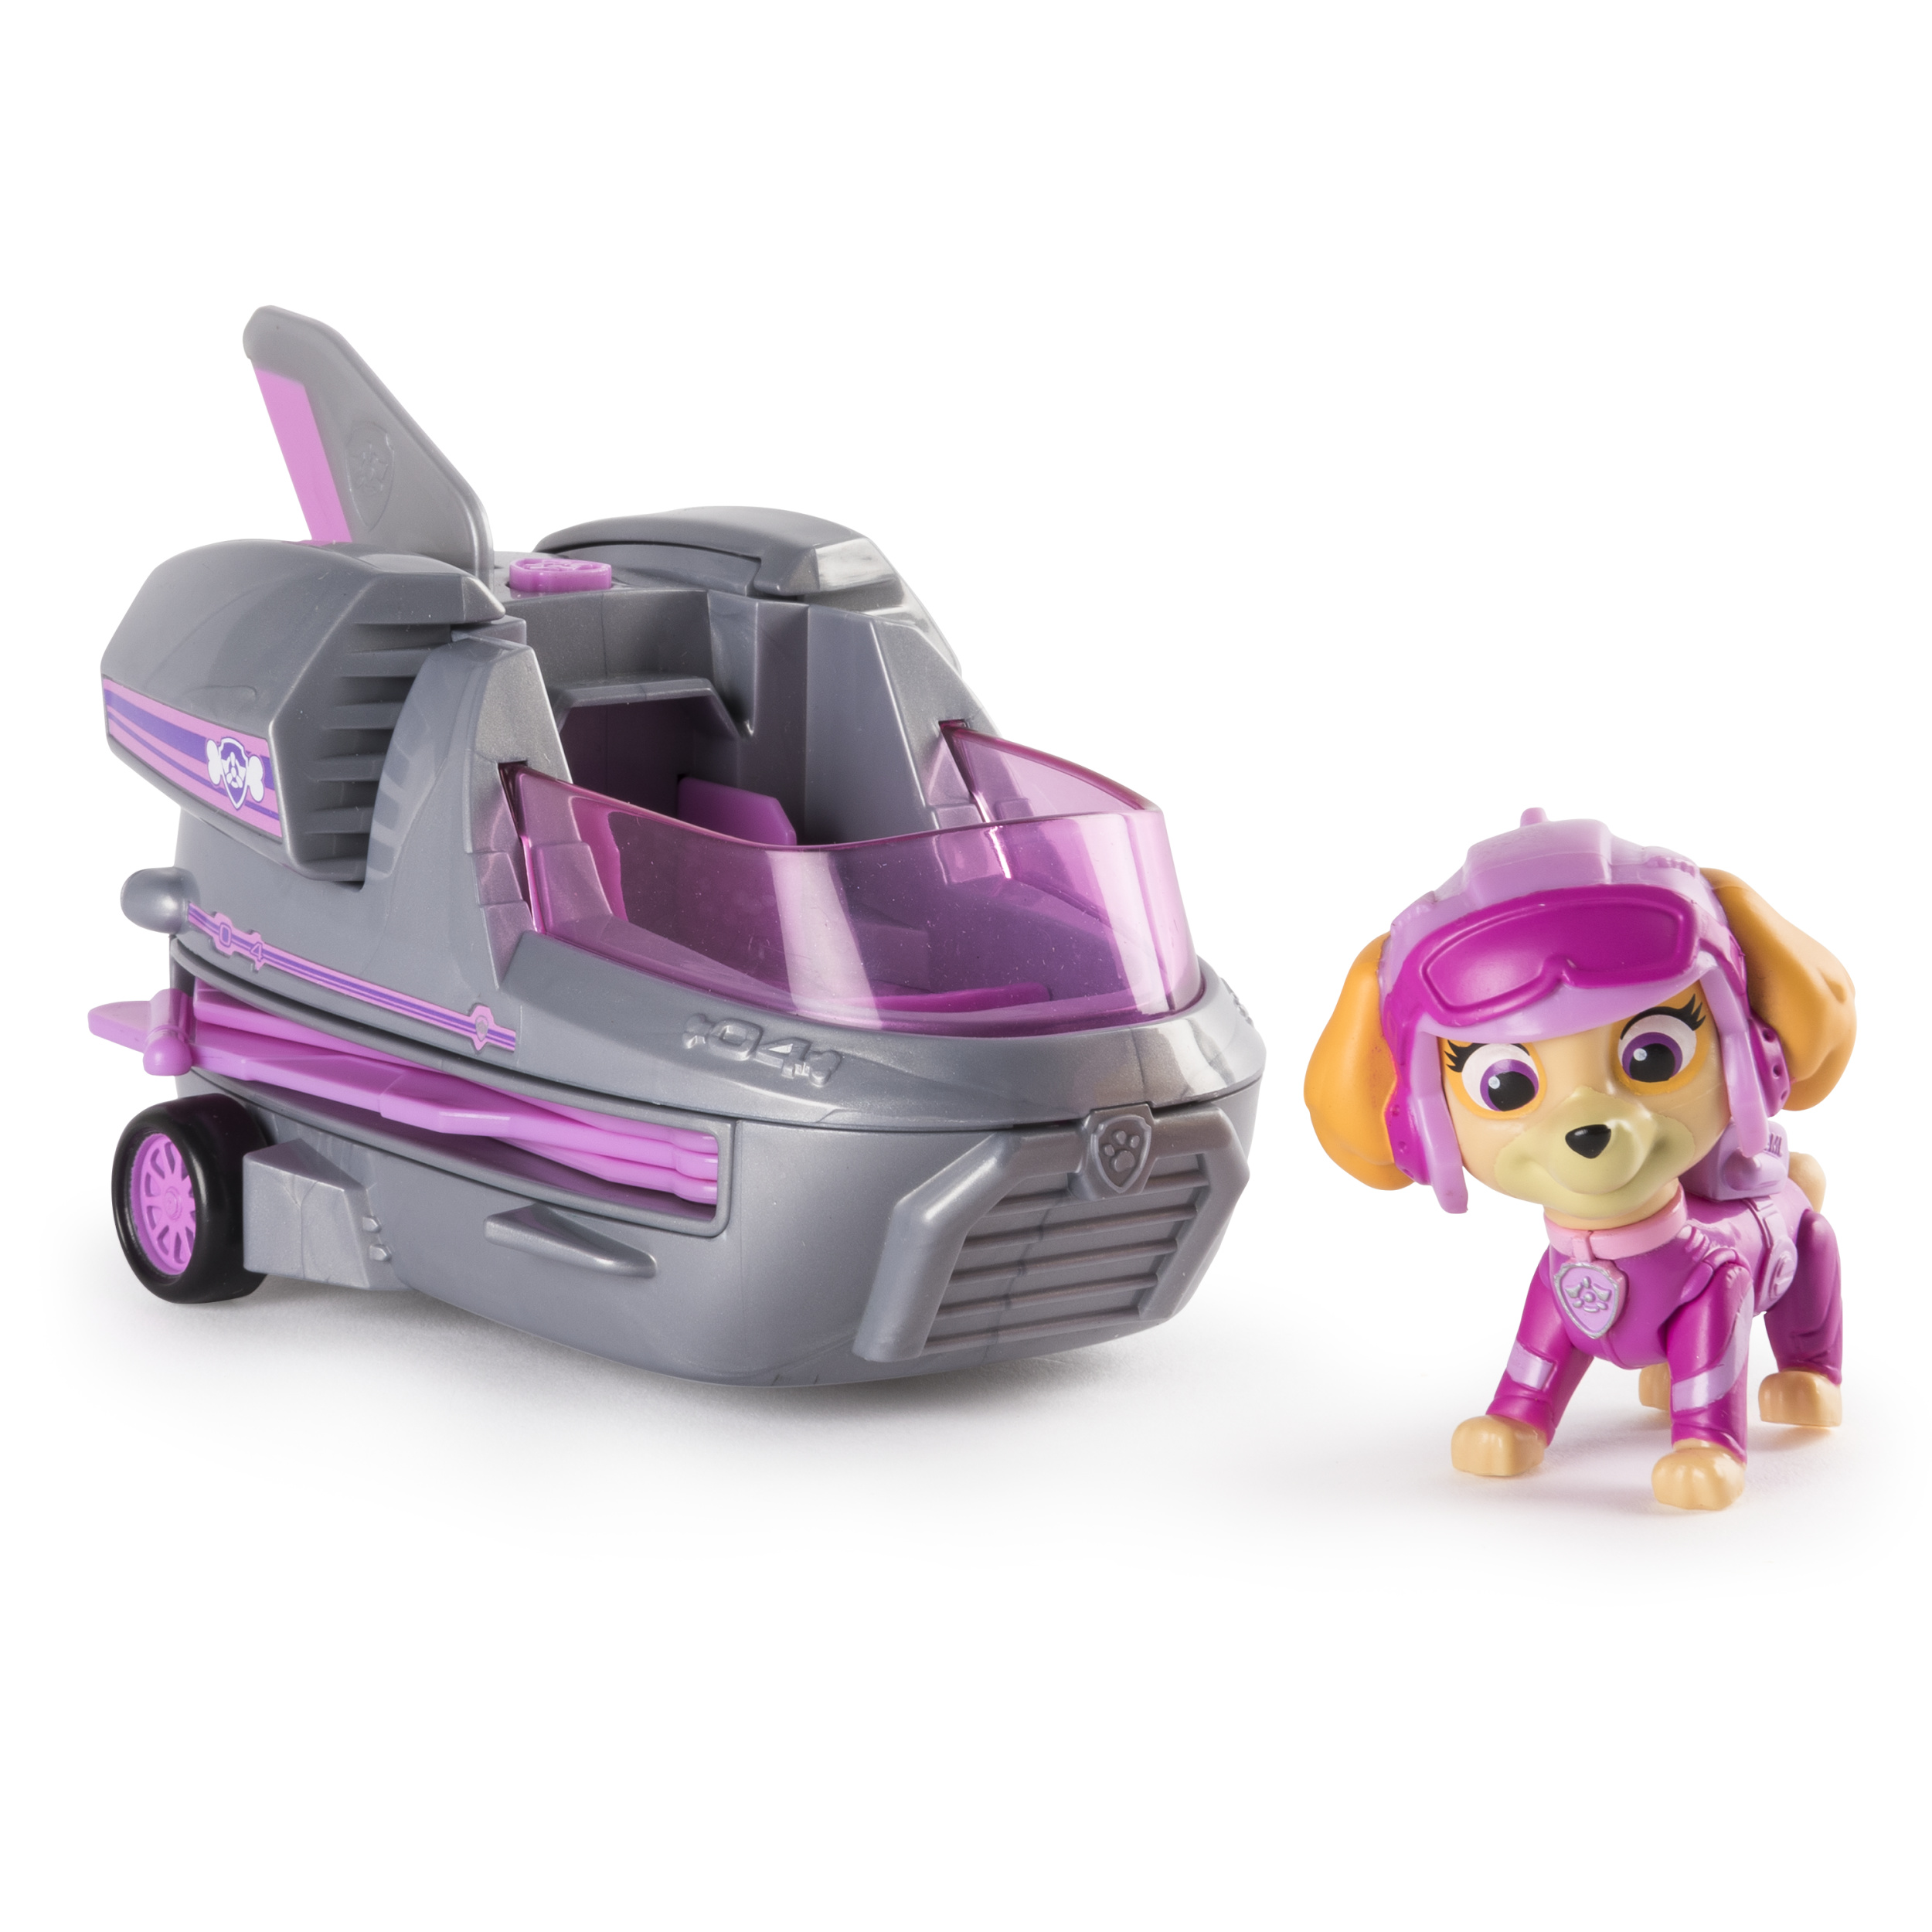 PAW Patrol ‐ Skye's Rescue Jet with Extendable Wings